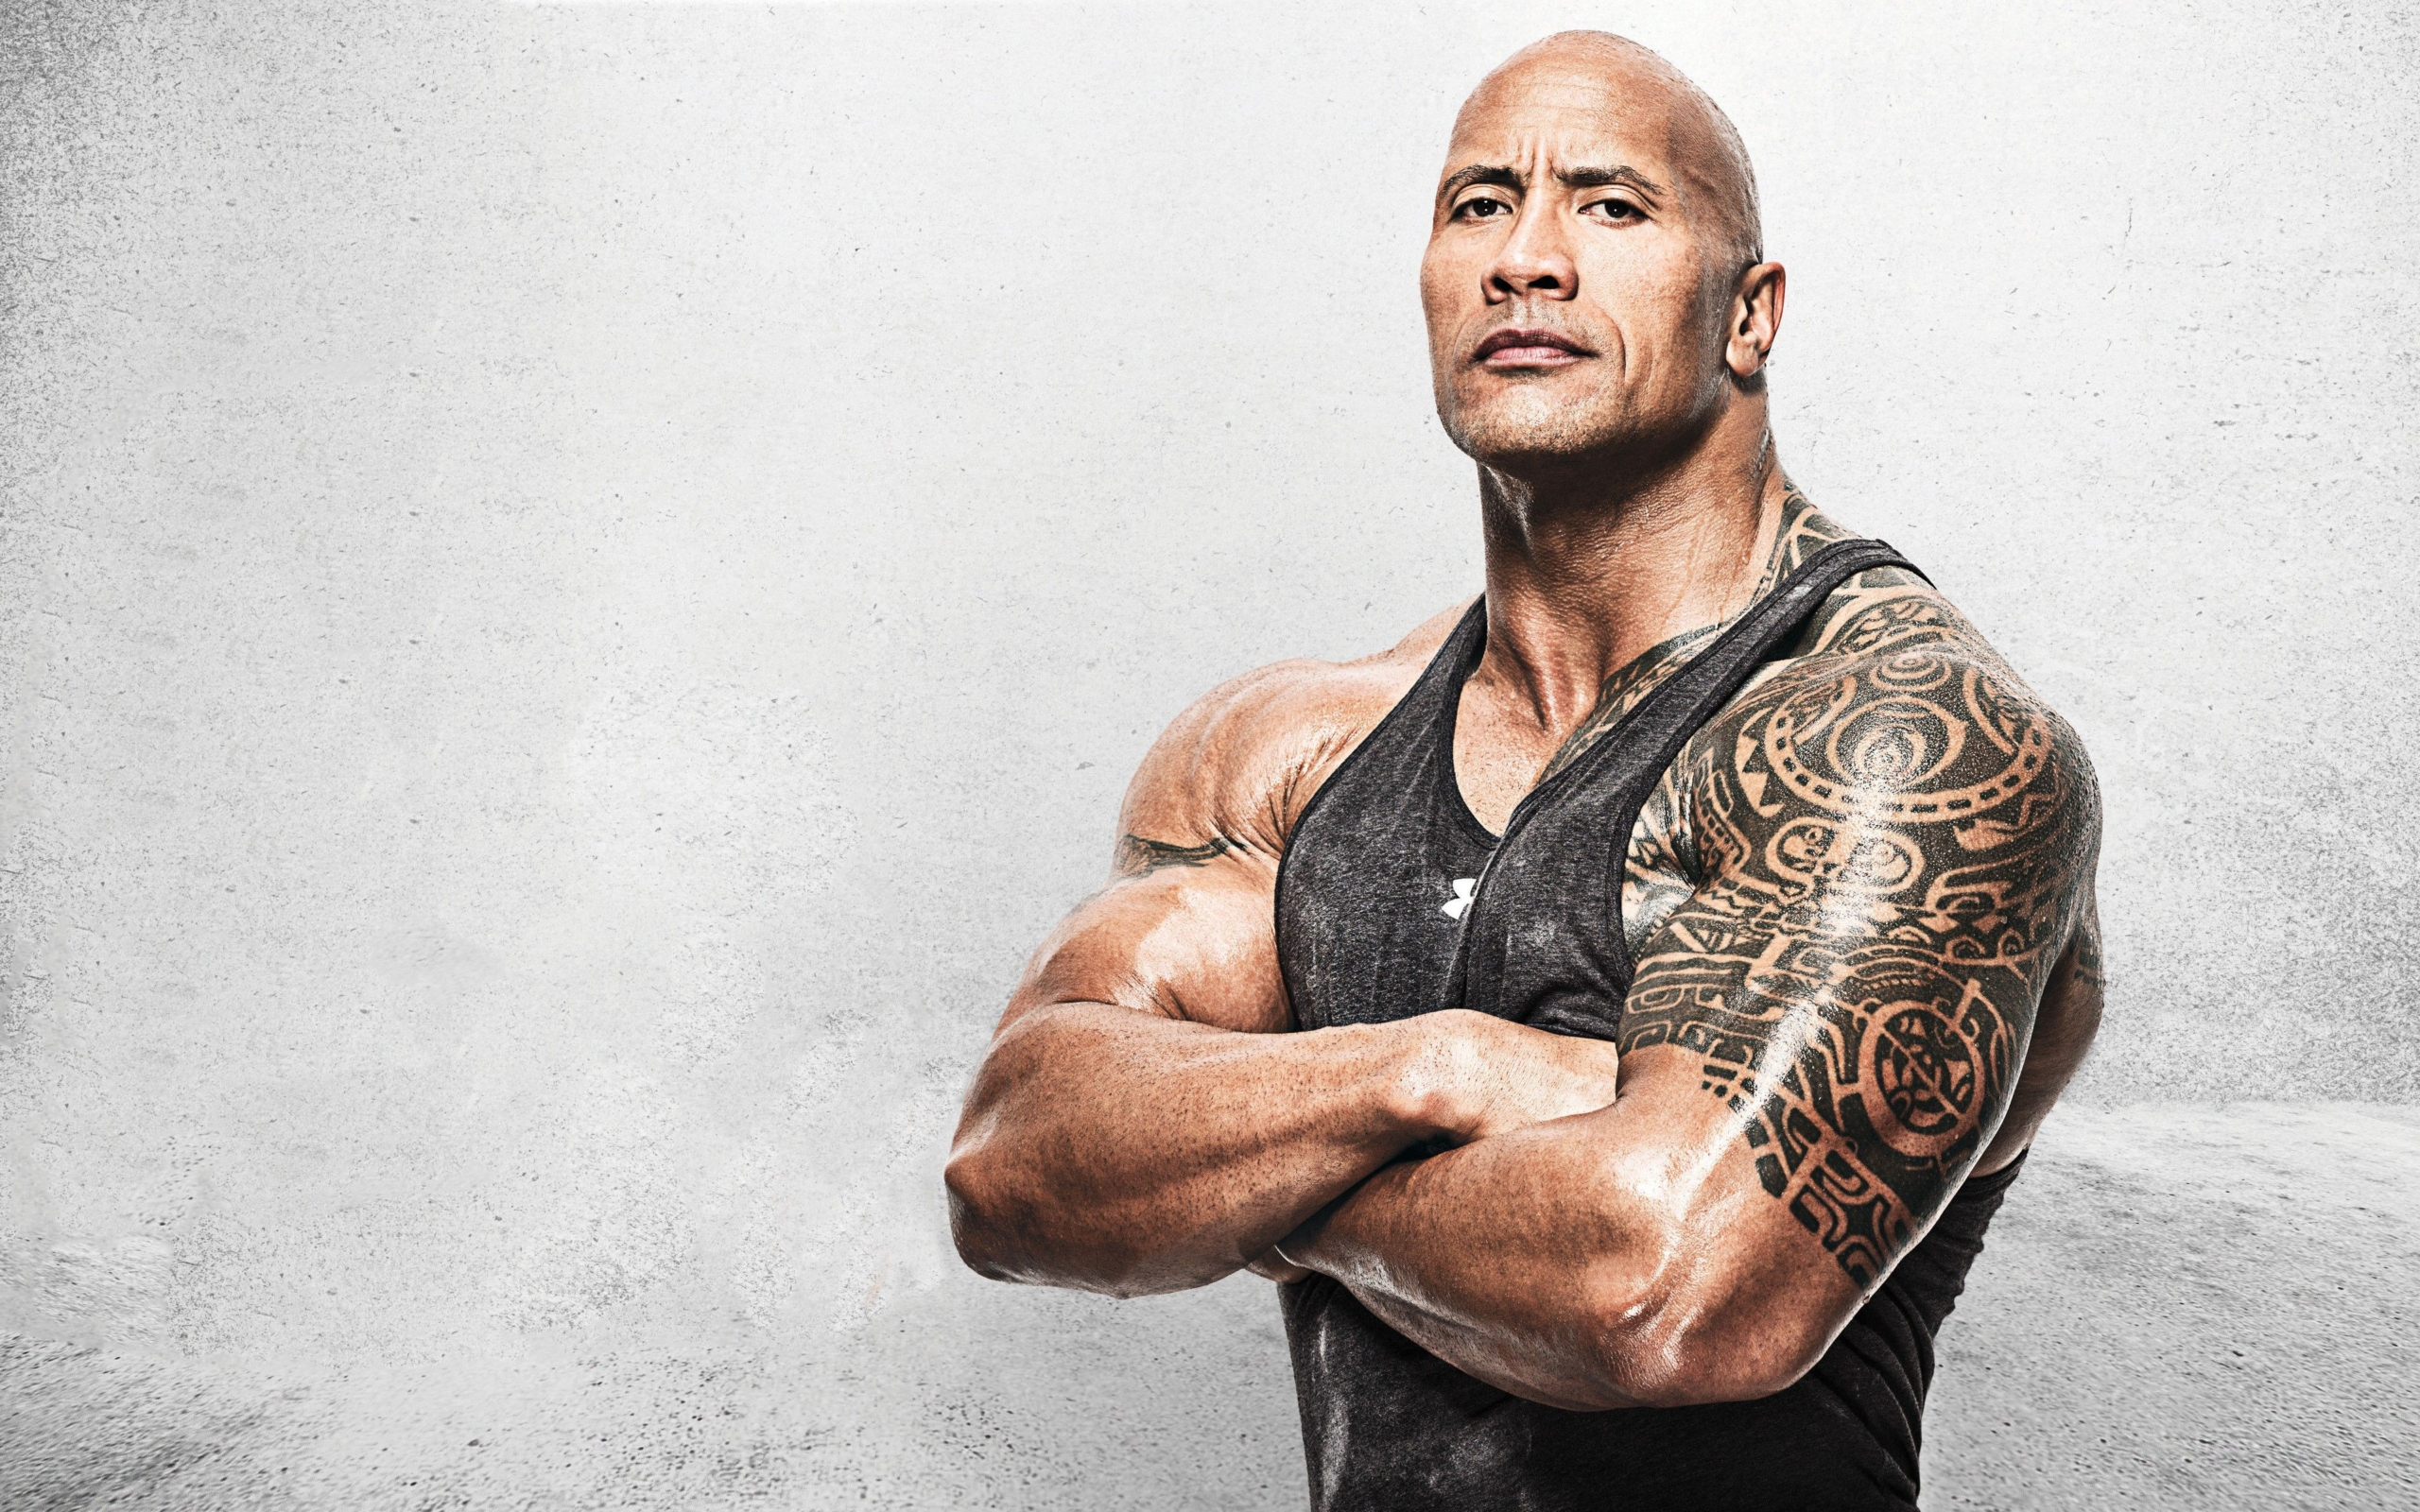 Choose the Rock Wallpaper and Enhance Your Computer's Appearance